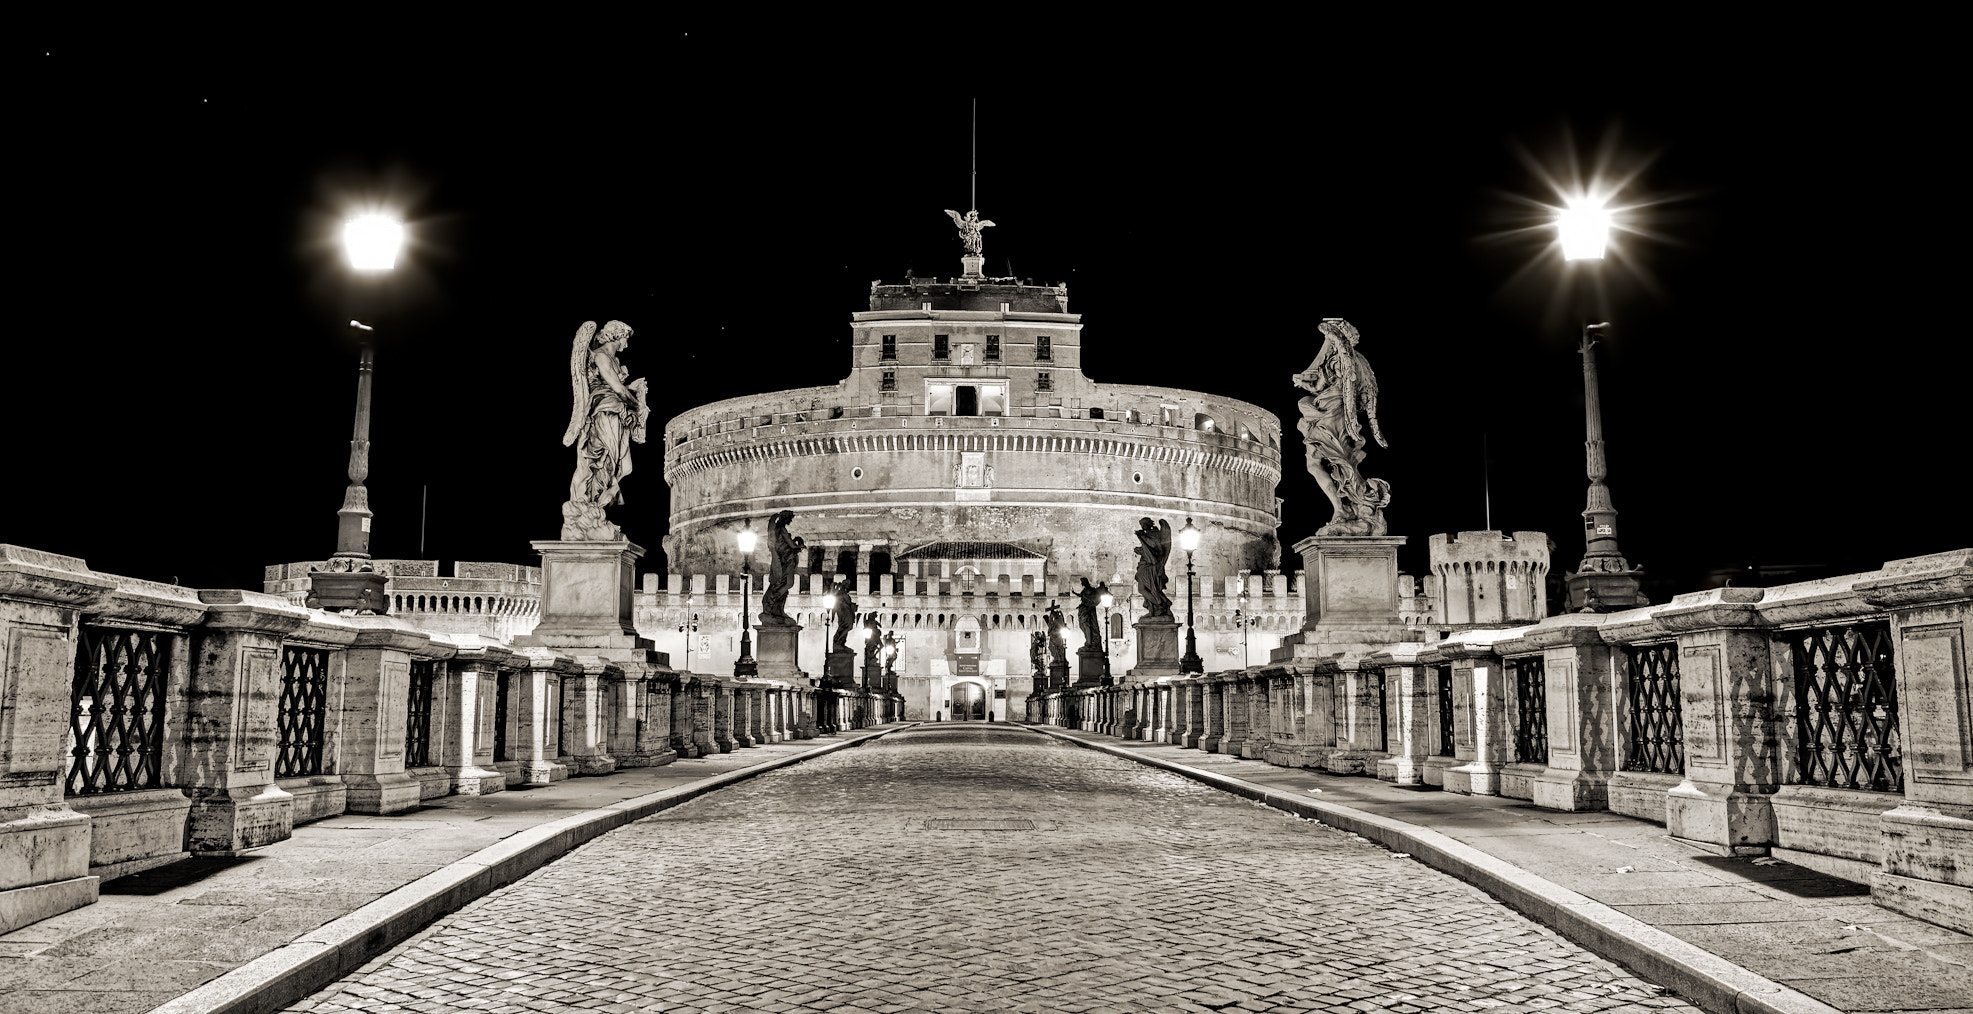 Photograph Castel Sant'Angelo, Rome by Stefano Di Chiara on 500px